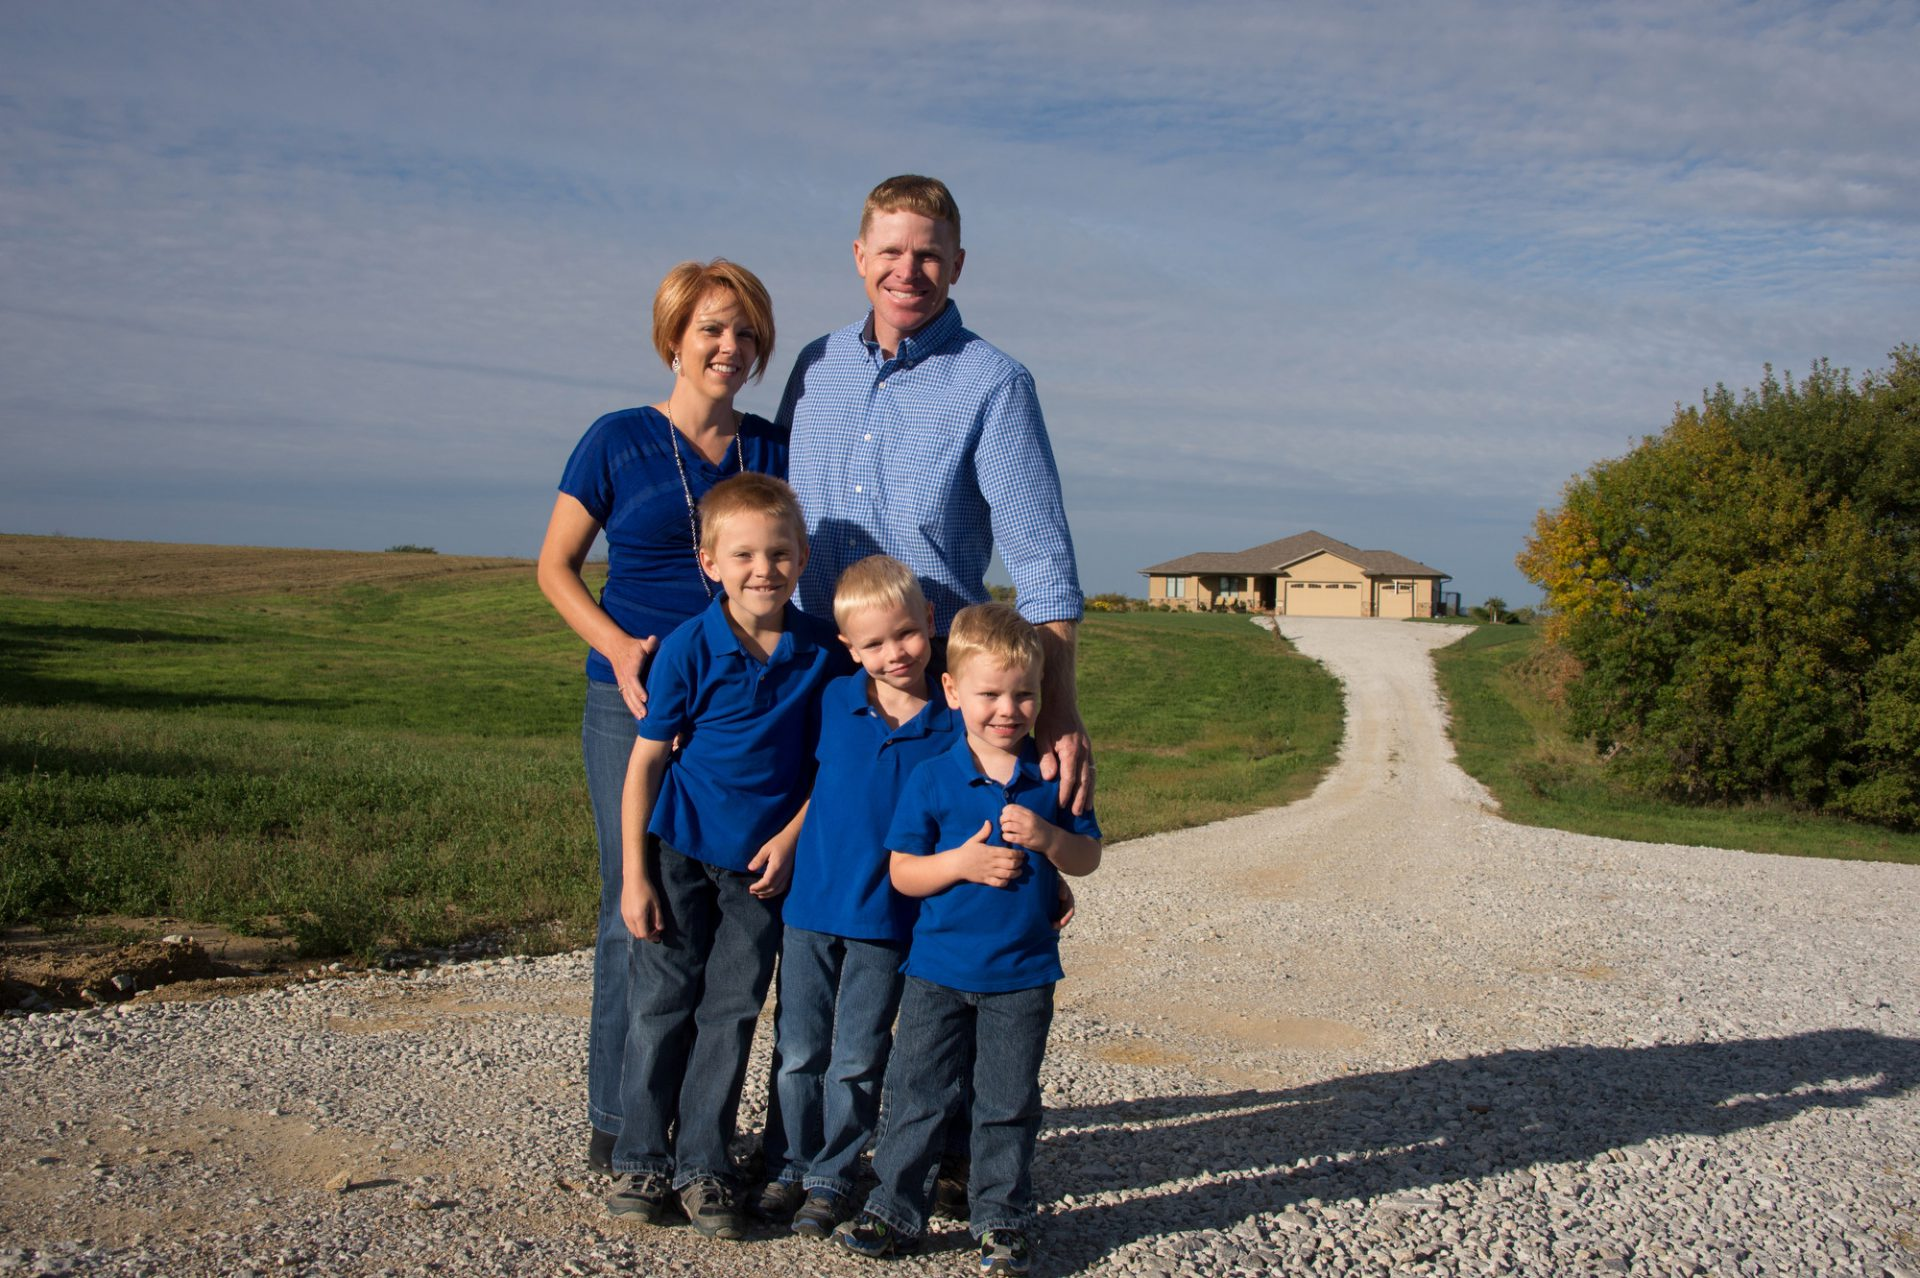 Photo: A family of five stand on the gravel road in front of their house.